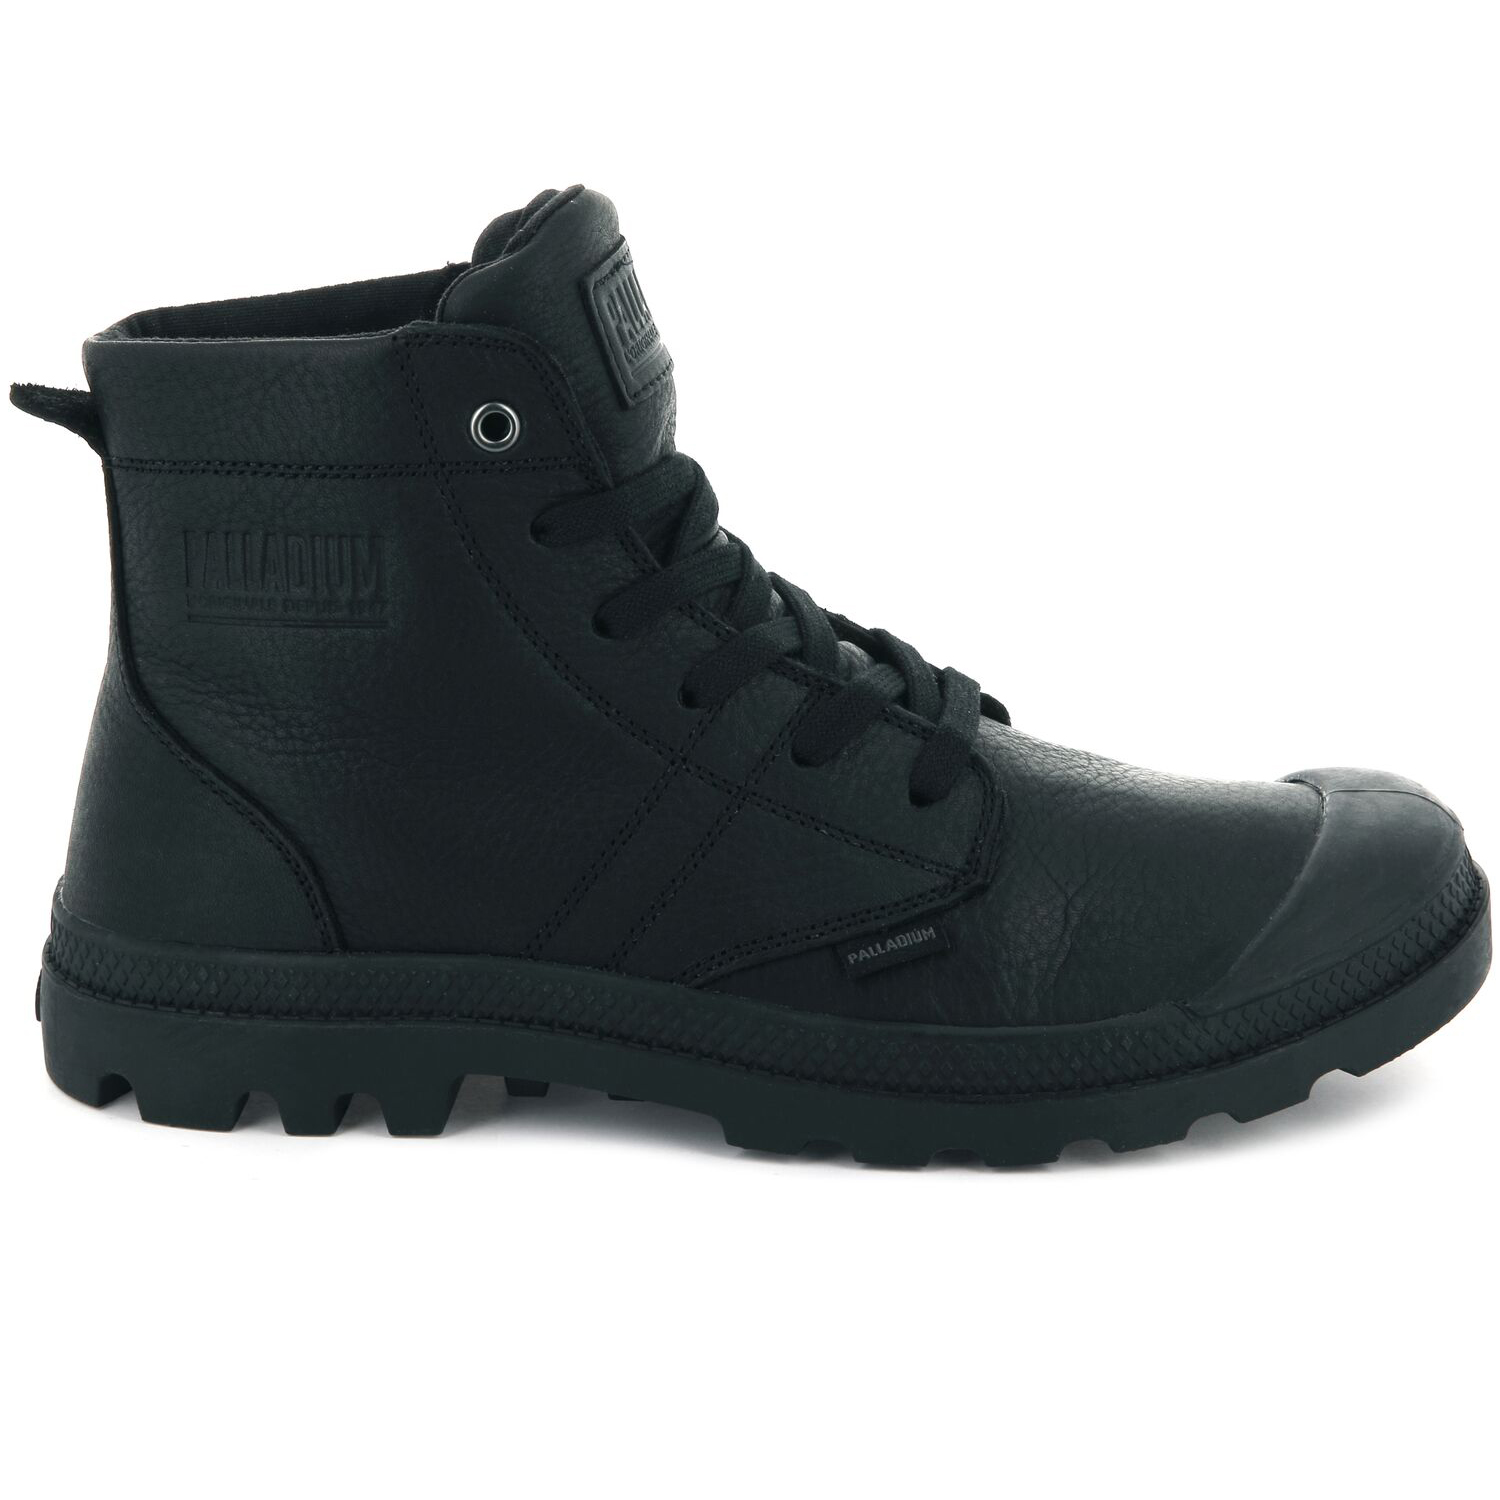 Palladium-Mens-Pallabrousse-Leather-Lace-Up-Boots-Walking-Chukka-Ankle-Shoes thumbnail 3